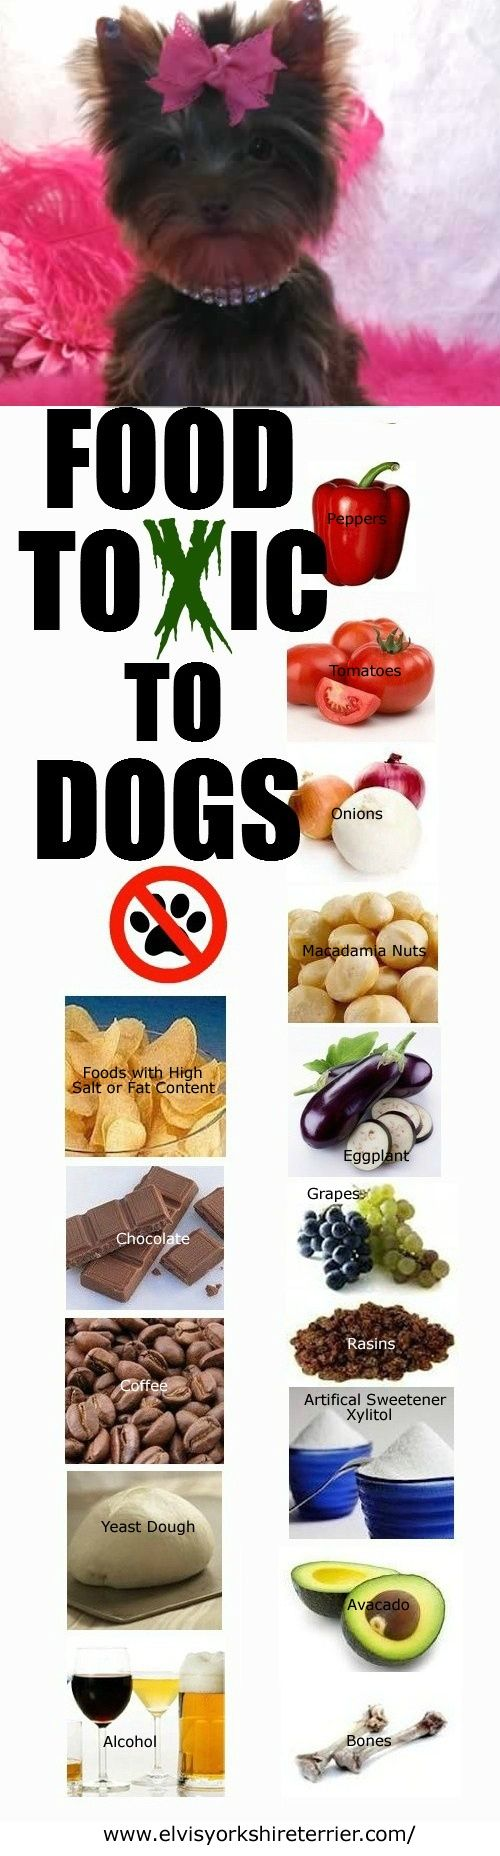 These foods are TOXIC to dogs! Be careful!태양성카지노태양성카지노태양성카지노태양성카지노태양성카지노 태양성카지노태양성카지노태양성카지노태양성카지노 태양성카지노태양성카지노태양성카지노태양성카지노태양성카지노태양성카지노태양성카지노태양성카지노태양성카지노태양성카지노태양성카지노태양성카지노태양성카지노태양성카지노태양성카지노태양성카지노 태양성카지노태양성카지노태양성카지노태양성카지노 태양성카지노태양성카지노태양성카지노태양성카지노태양성카지노태양성카지노태양성카지노태양성카지노태양성카지노태양성카지노태양성카지노